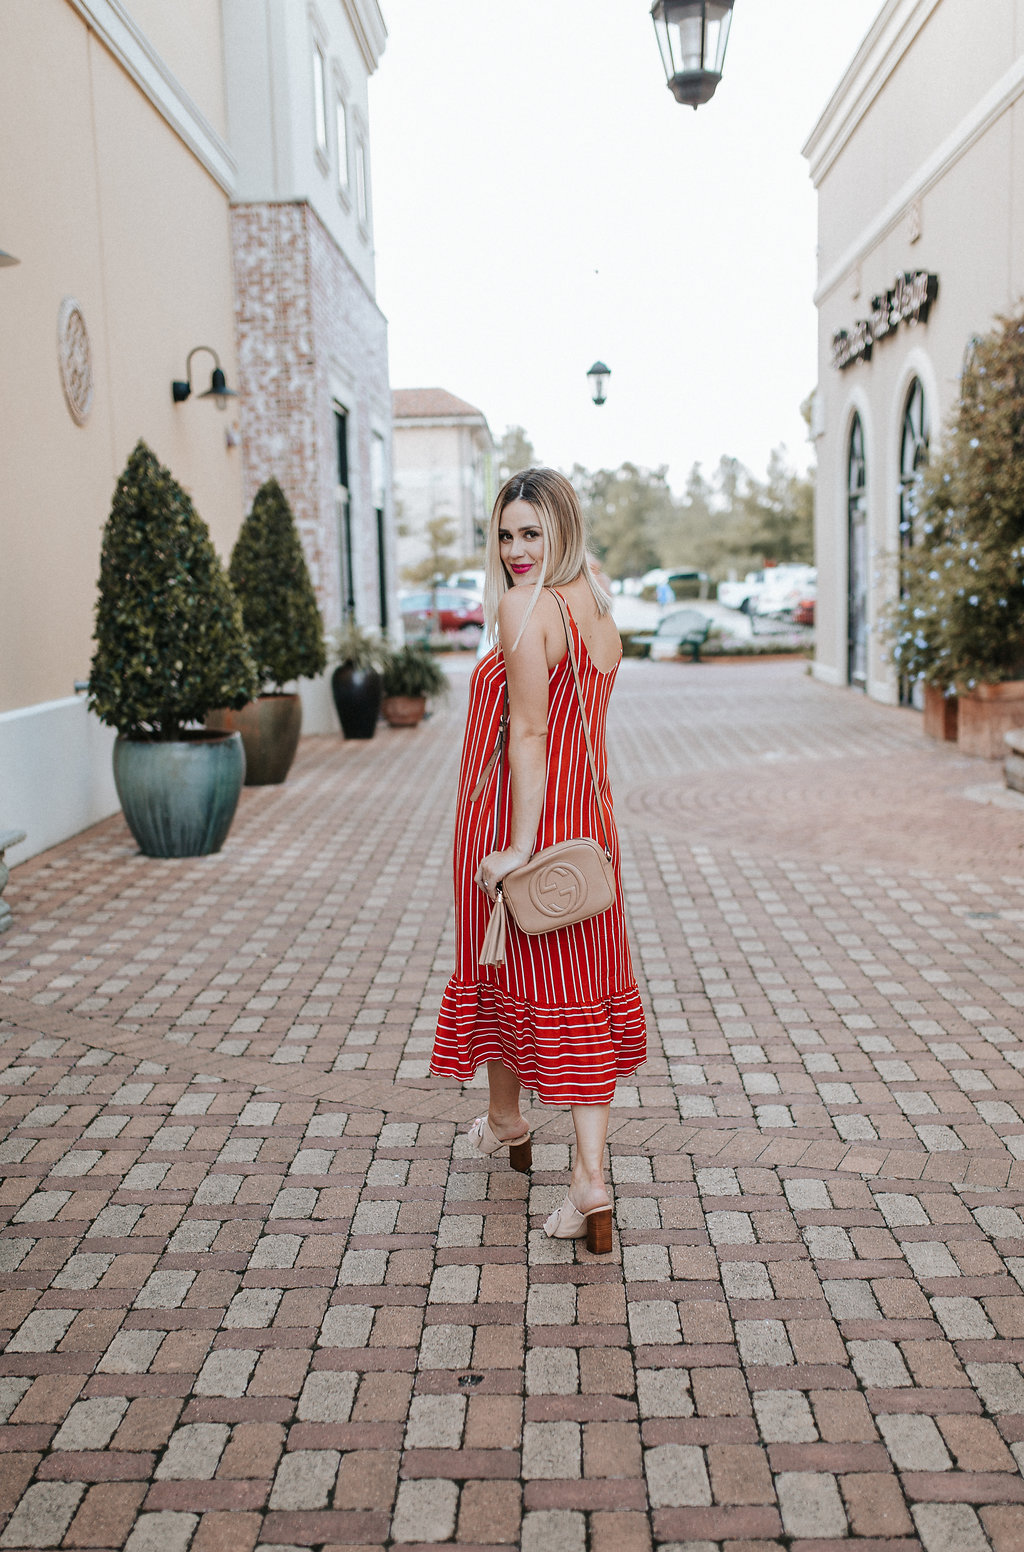 Red Striped Dress   Amazon Fashion   Paris Sunday Dress   Uptown with Elly Brown